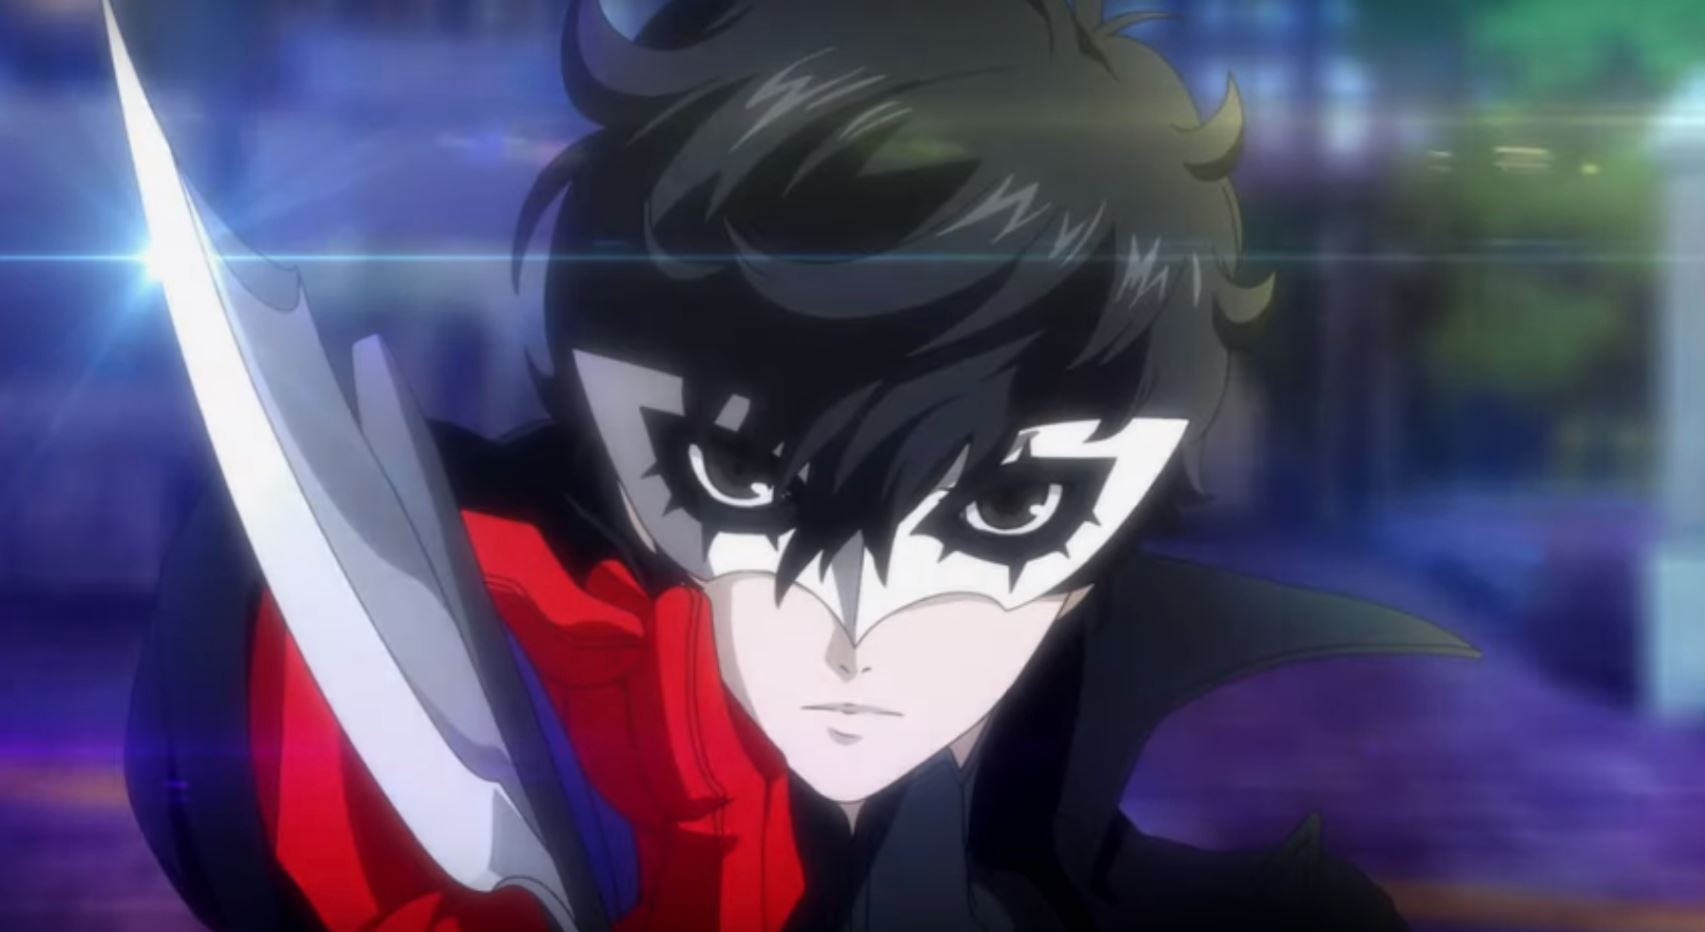 the-phantom-thieves-journey-continues-in-the-persona-5-strikers-launch-trailer